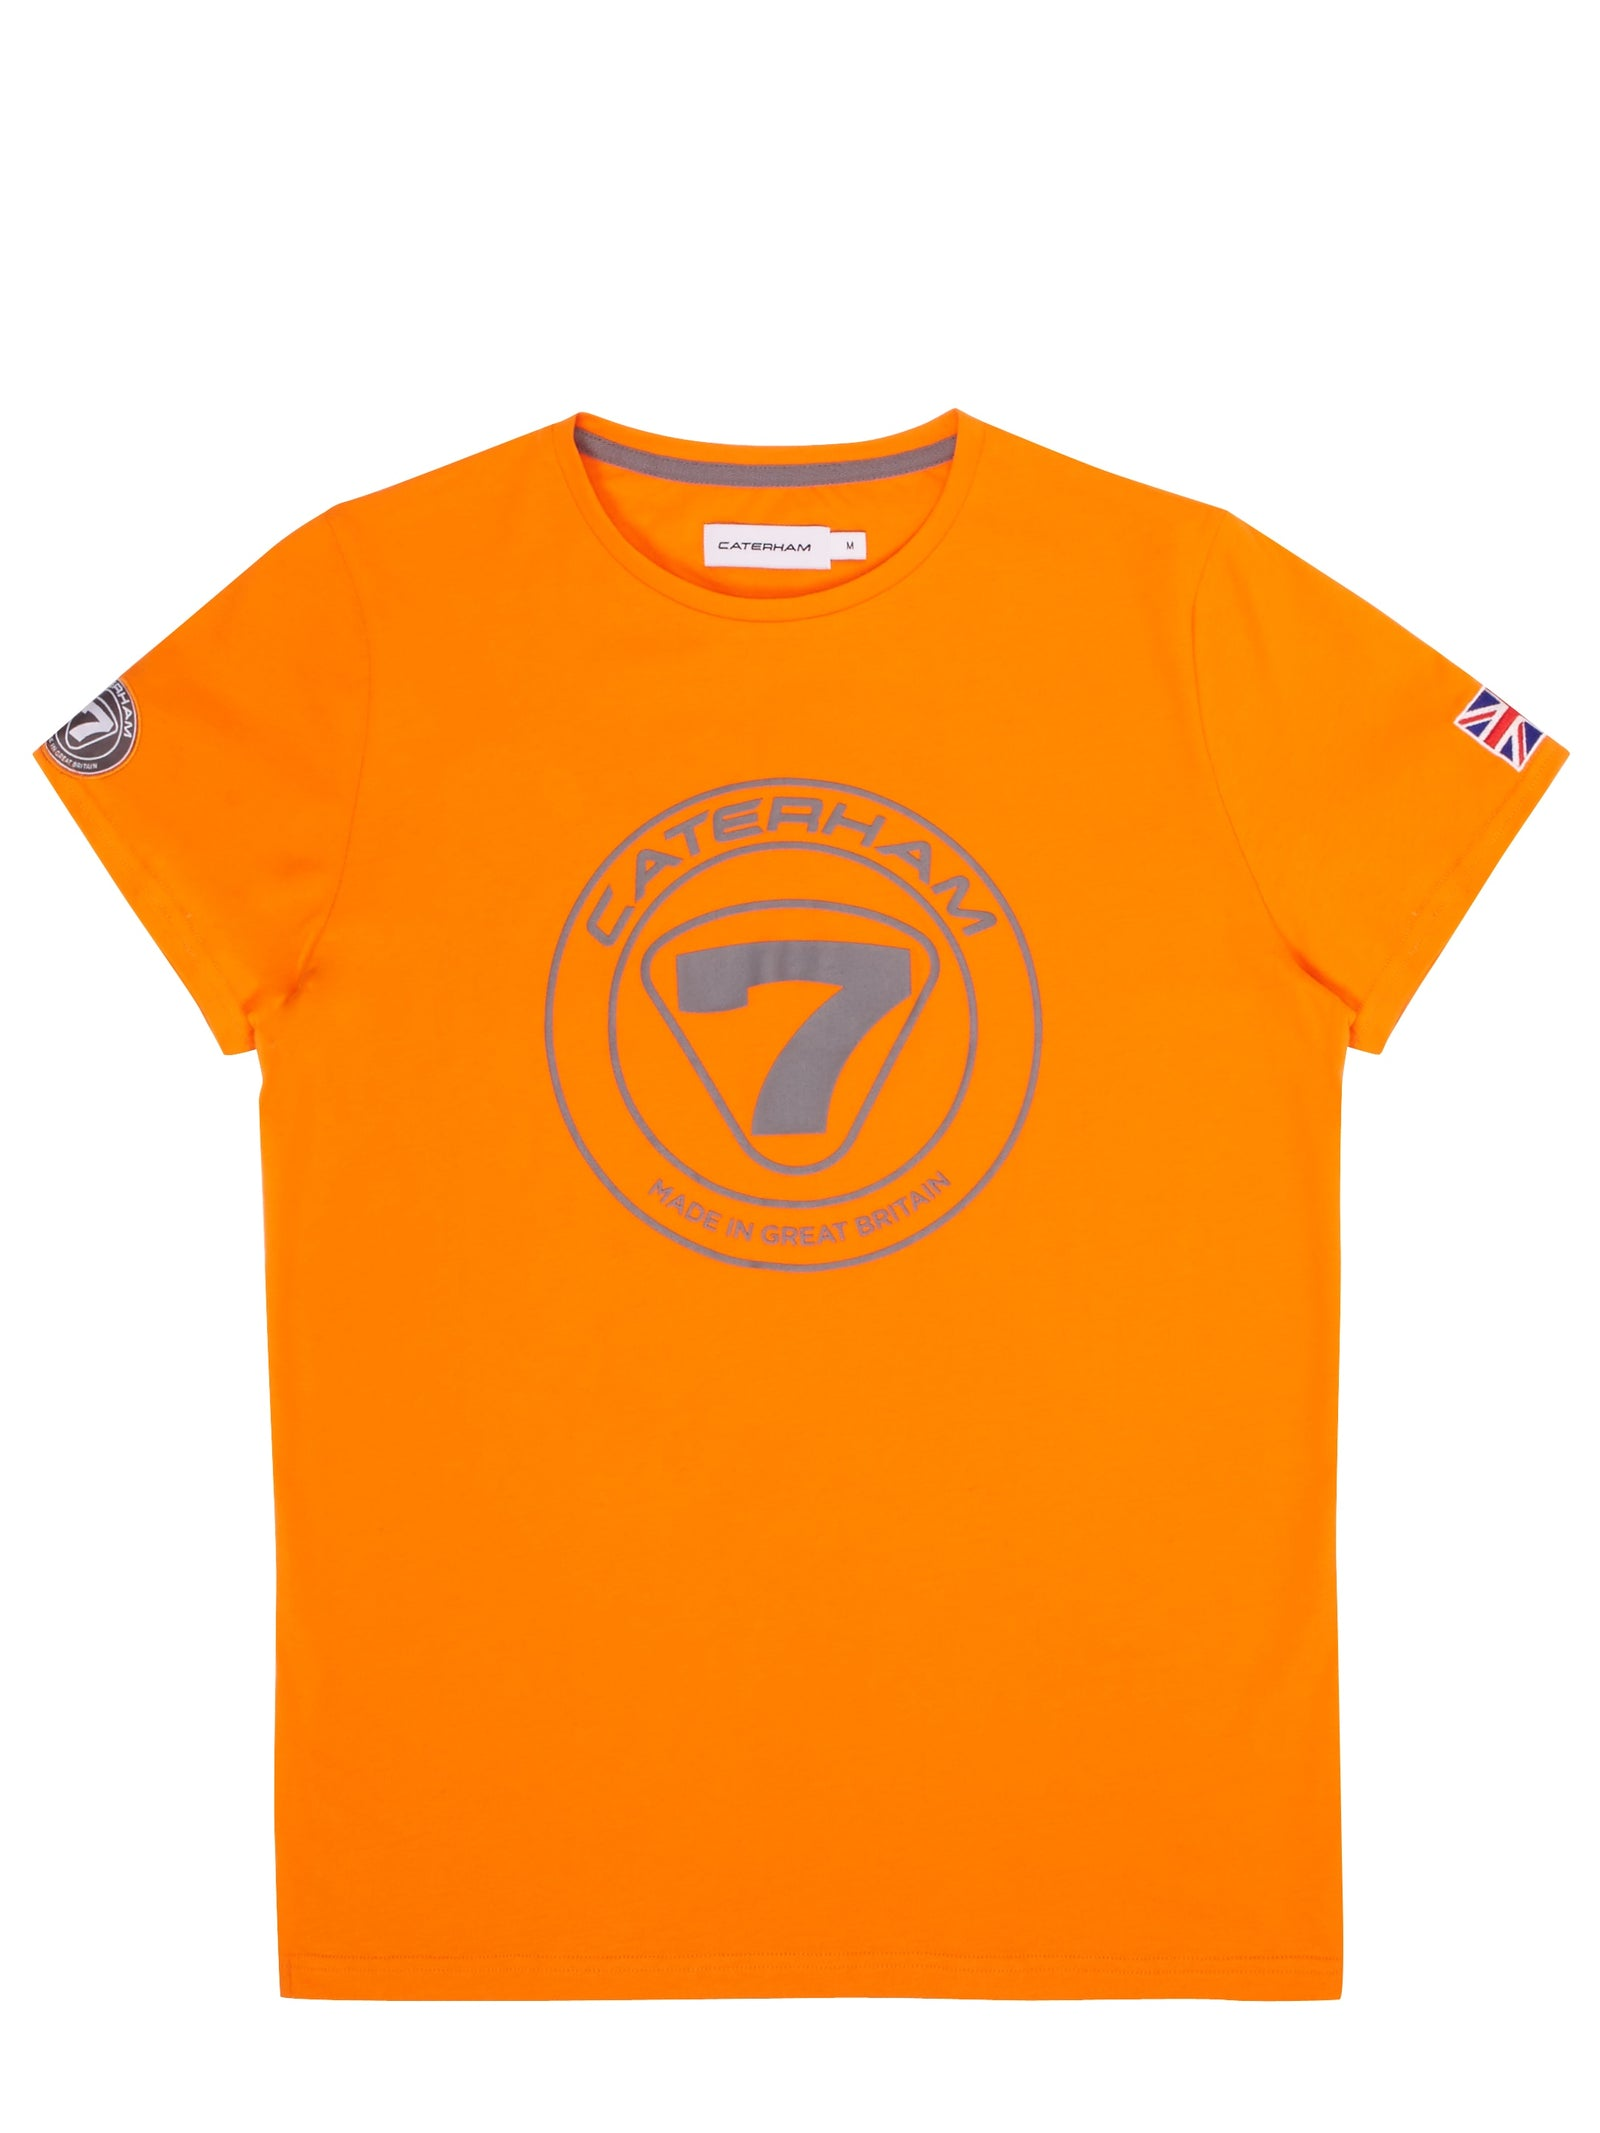 Caterham 7 Tee Orange